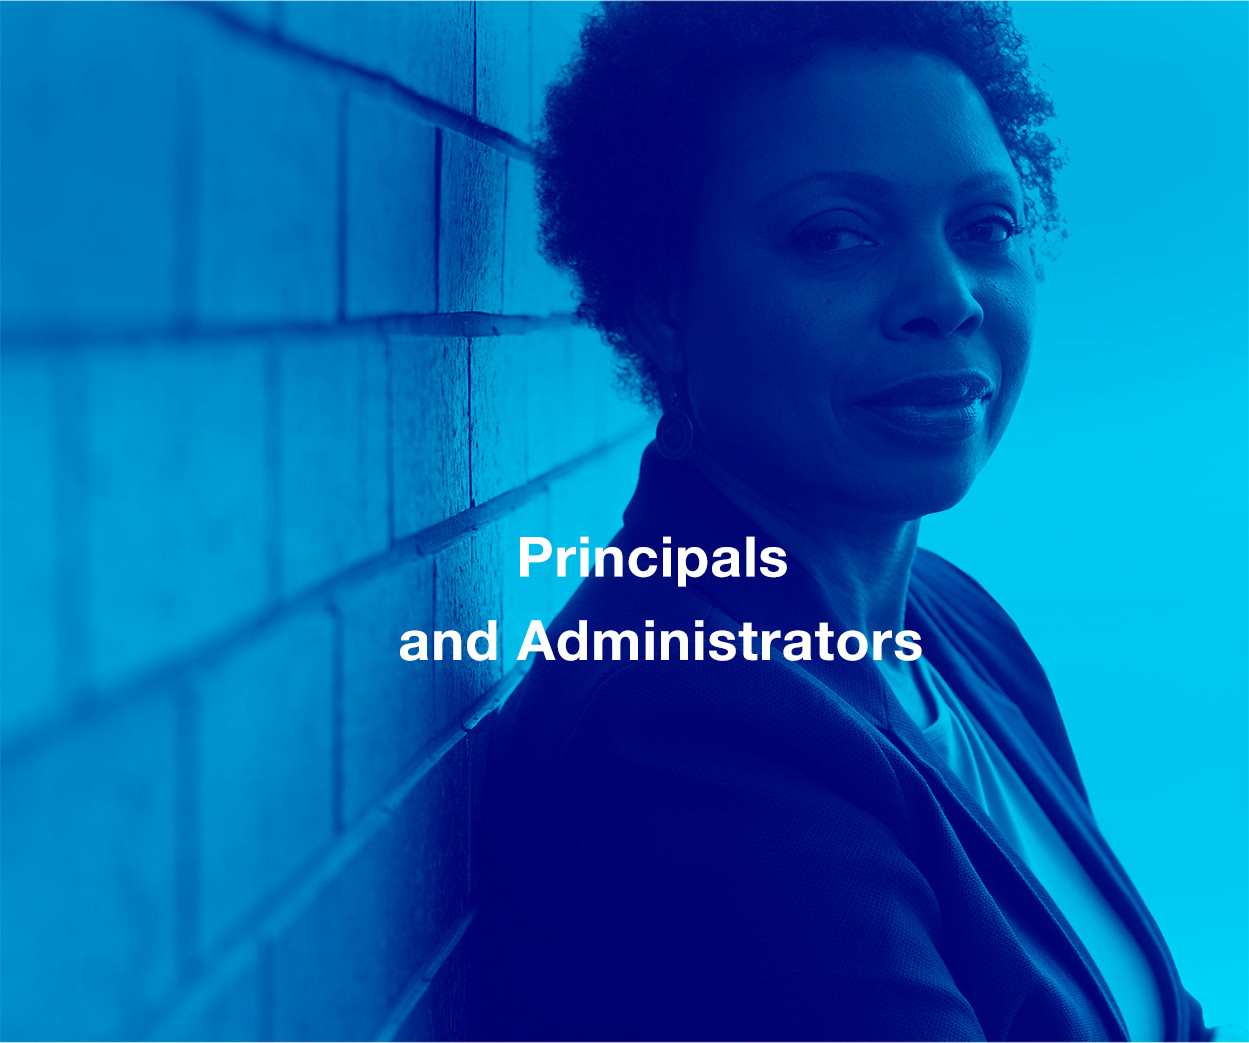 Principals and Administrators